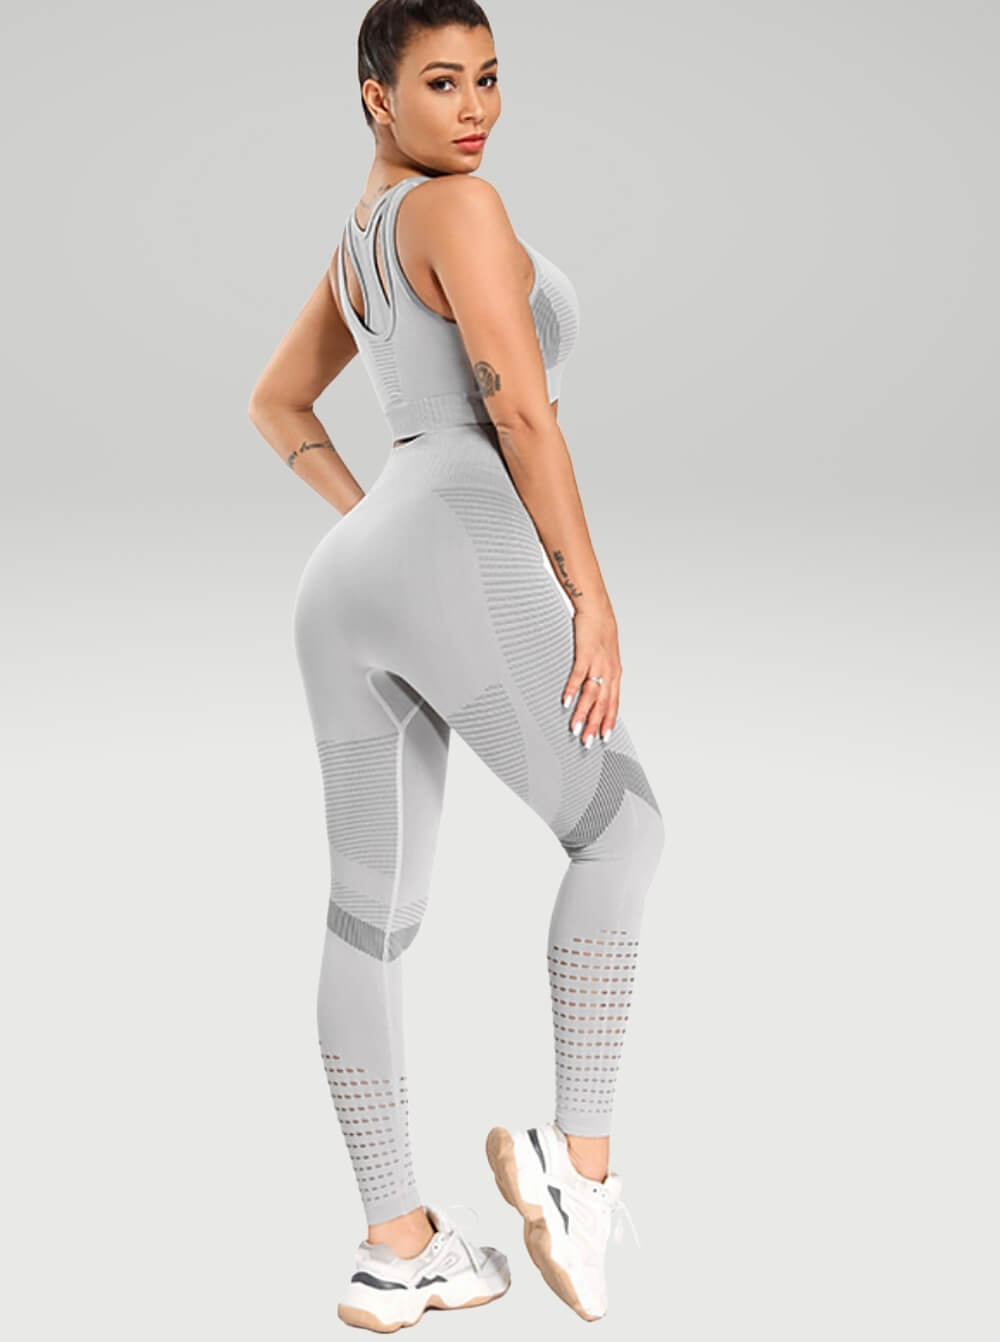 v2 Era Seamless Control Leggings